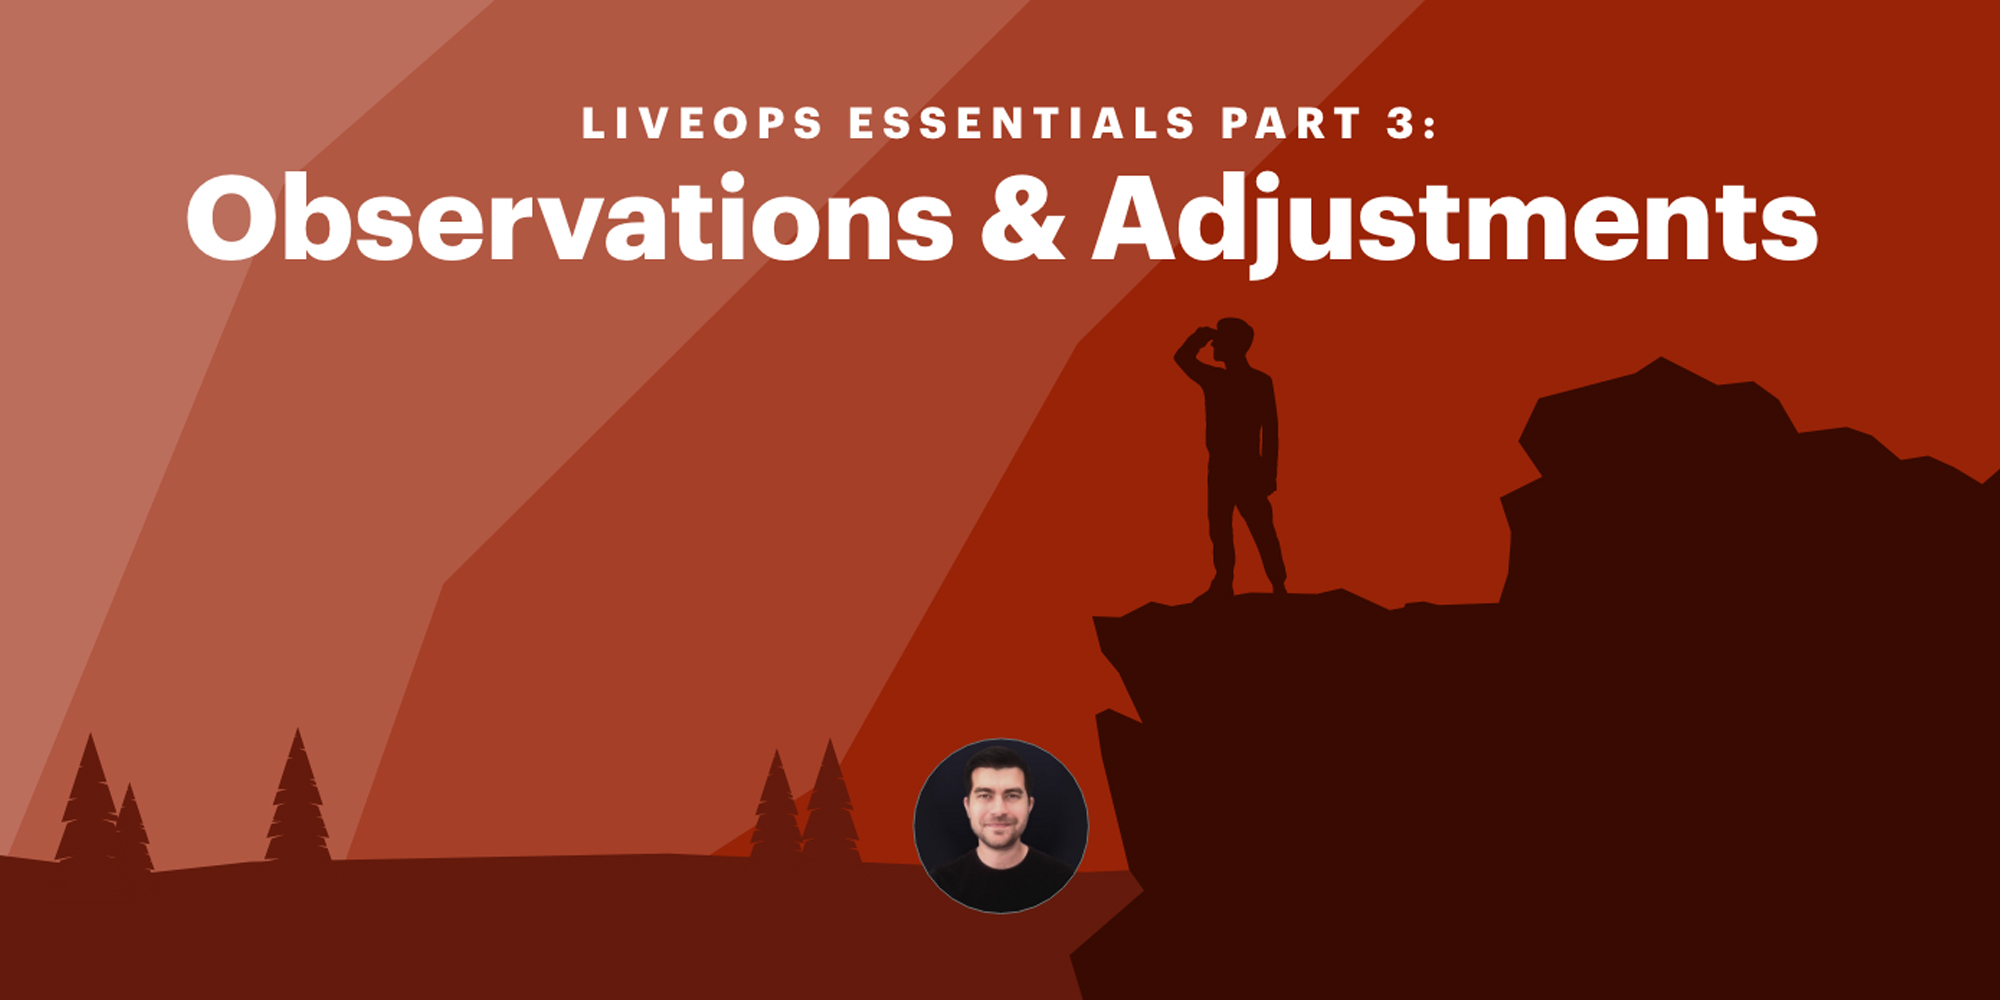 LiveOps Essentials Part 3: Observation & Adjustments